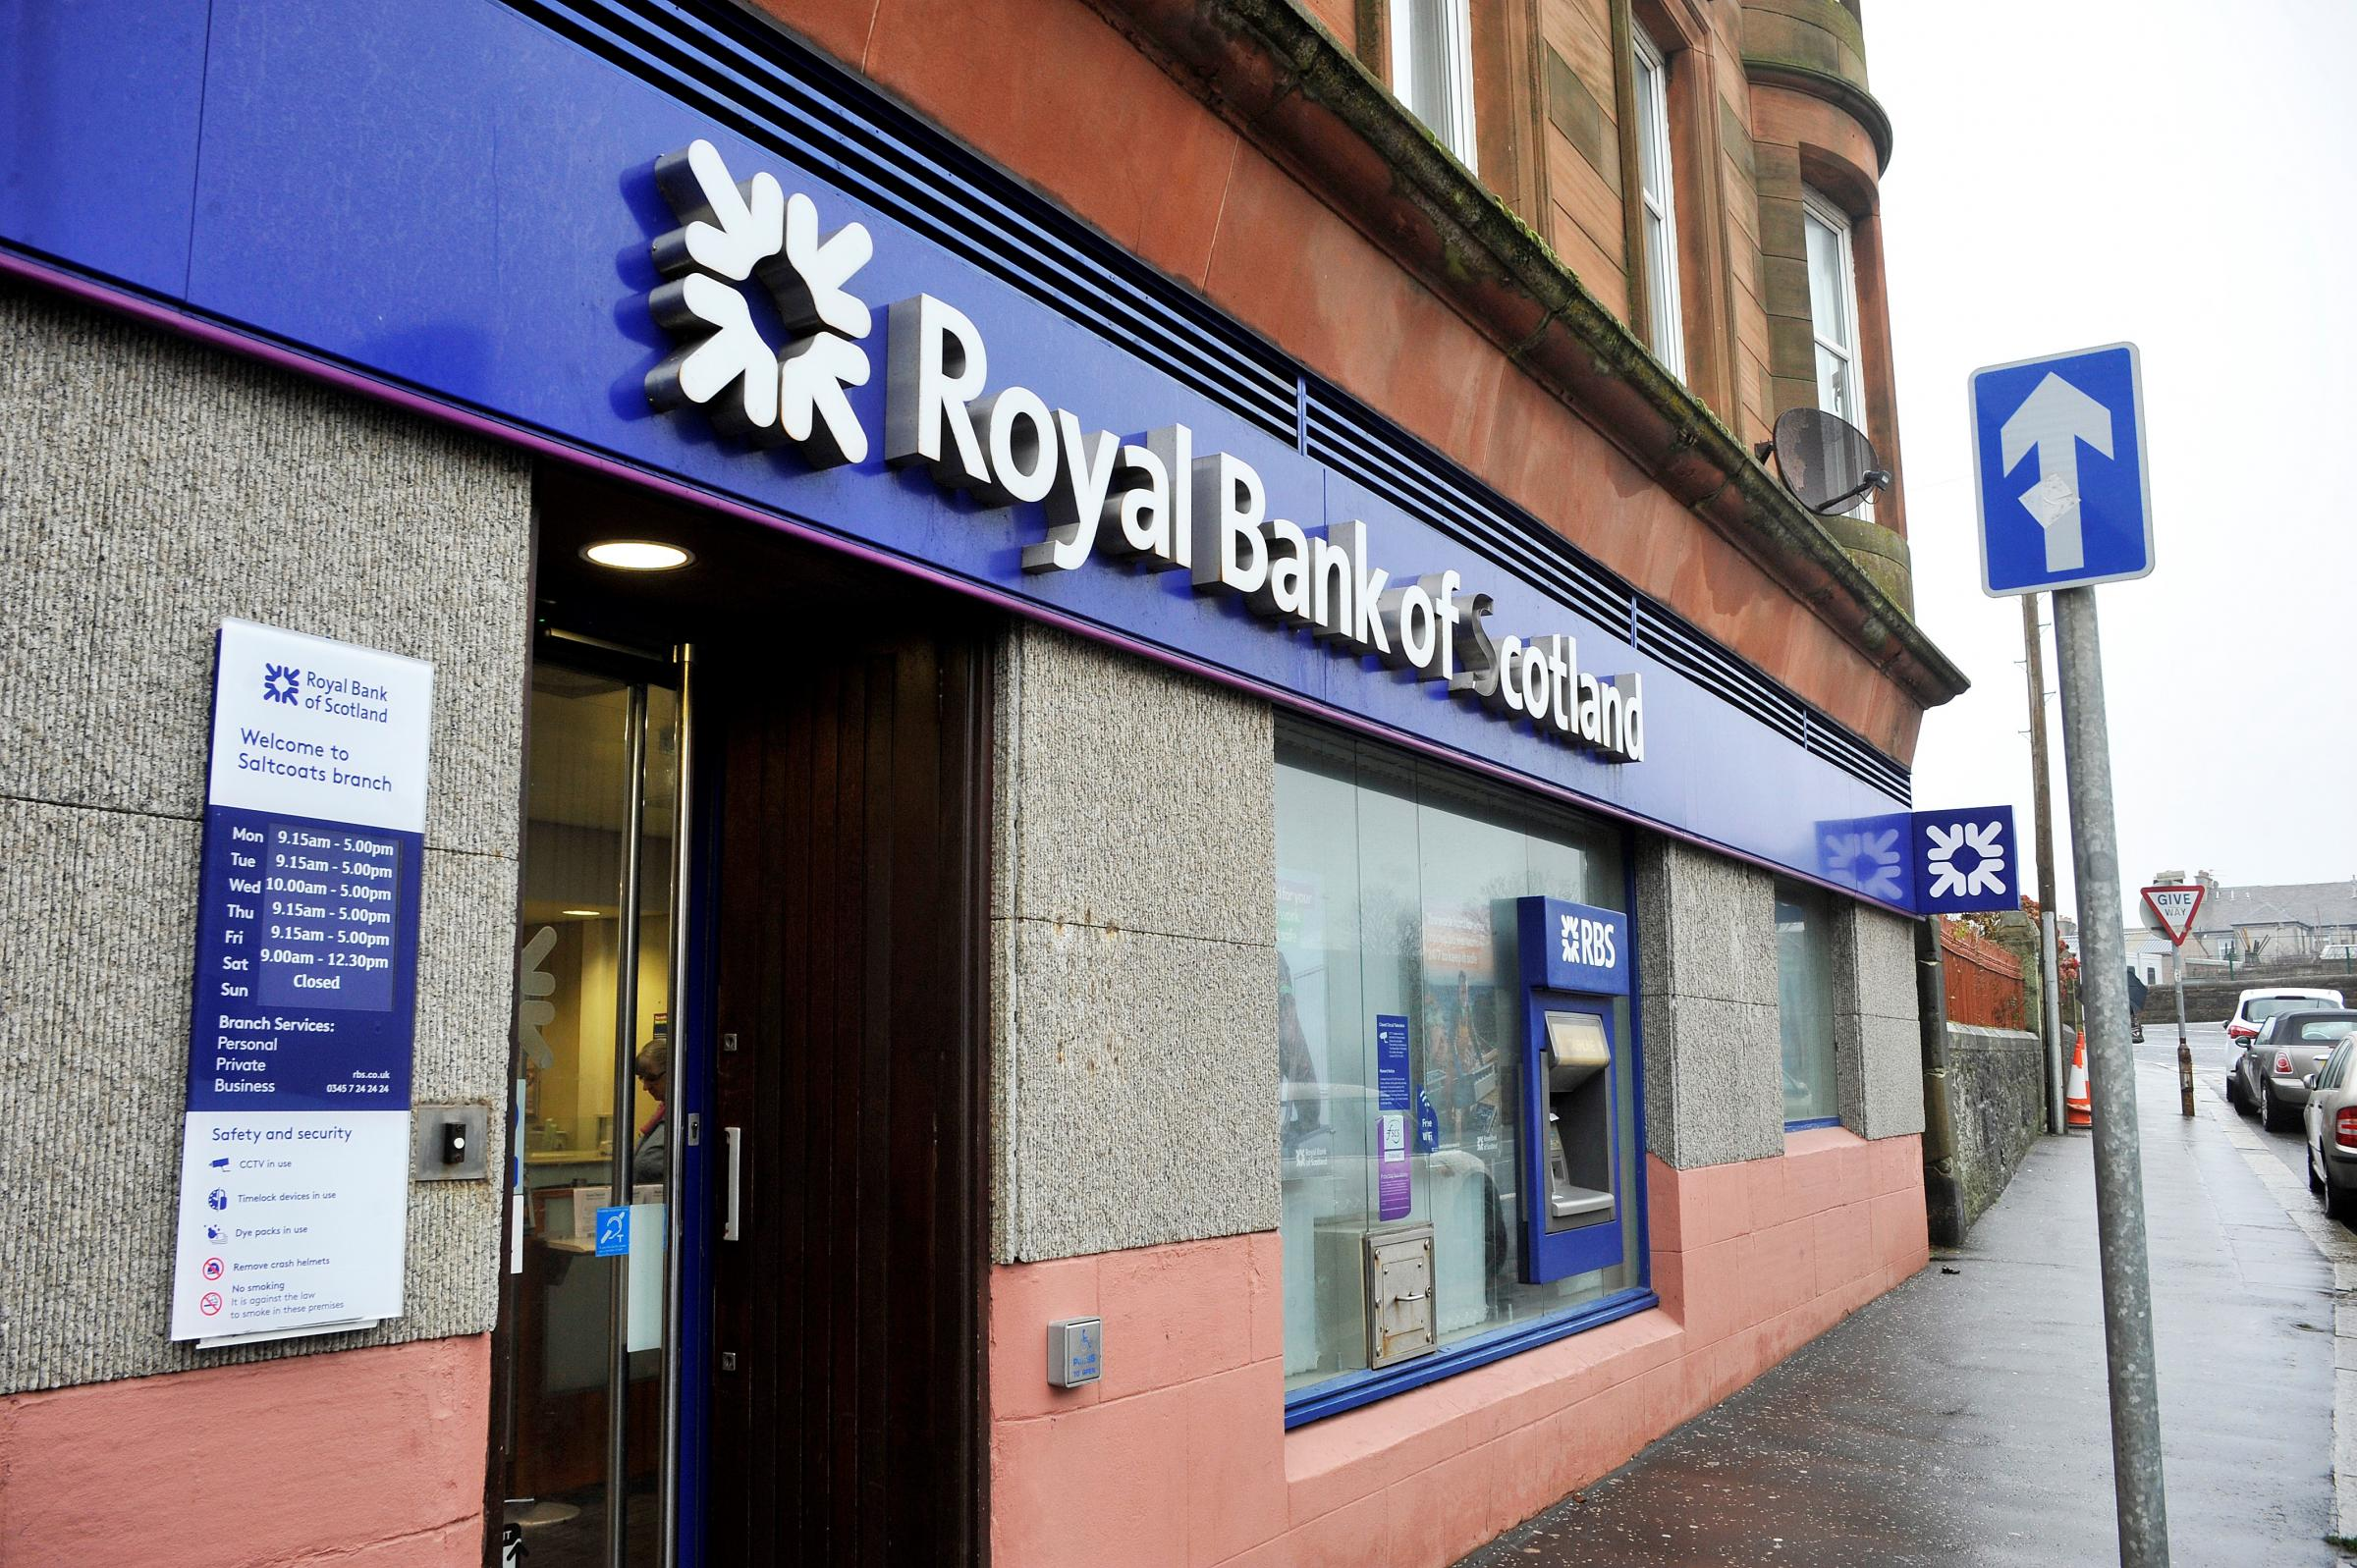 The RBS Branch in Saltcoats which is due to close in June 2018